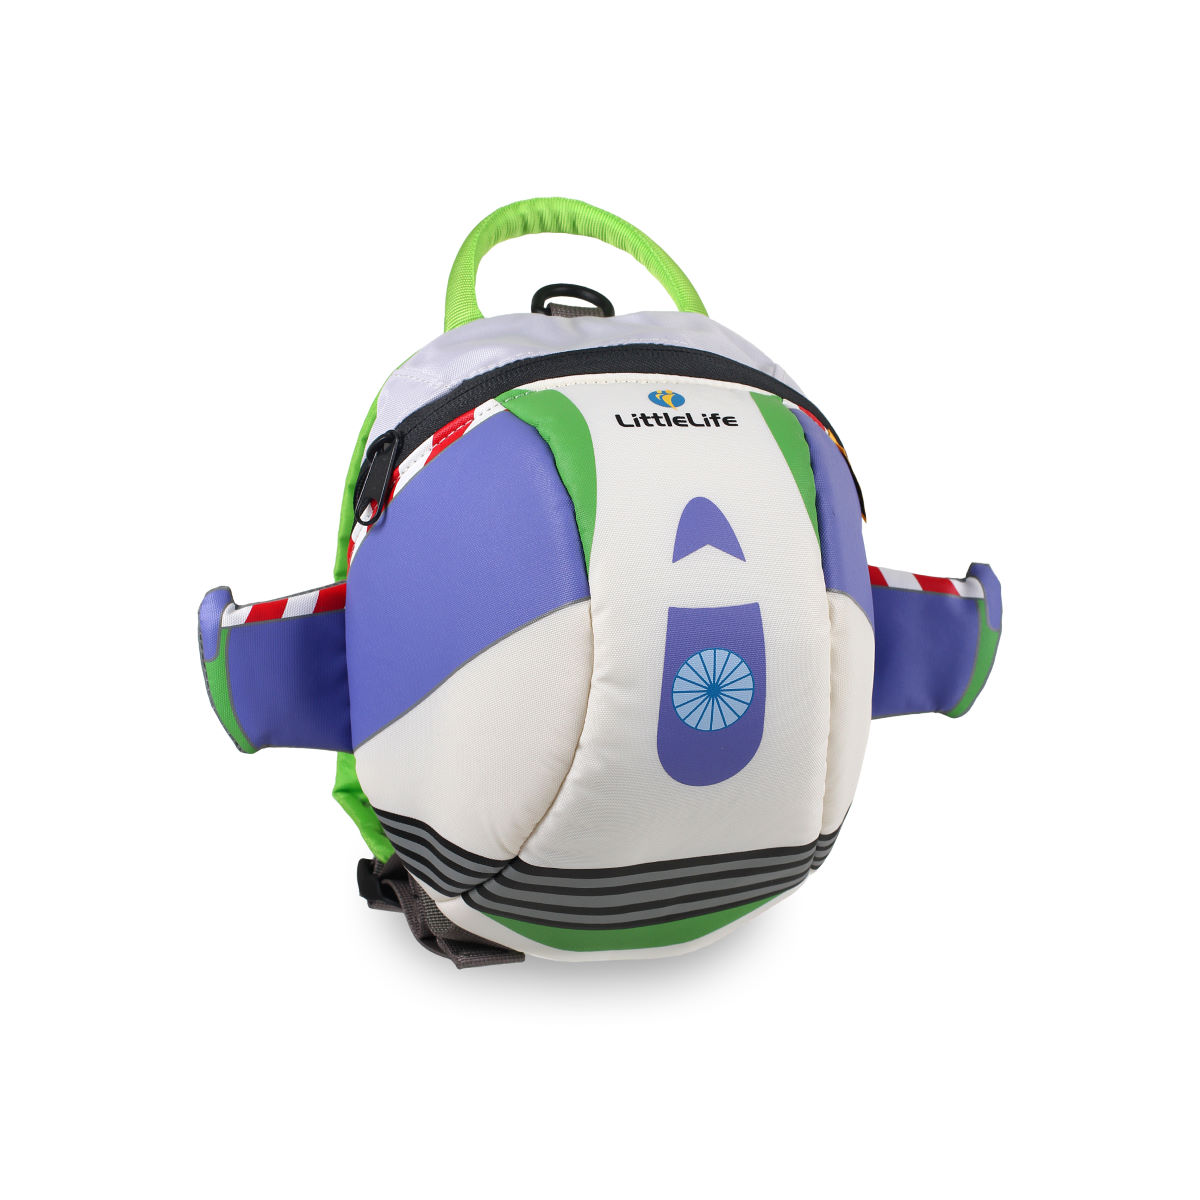 Littlelife LittleLife Toddler Disney Buzz Lightyear Daysack   Rucksacks